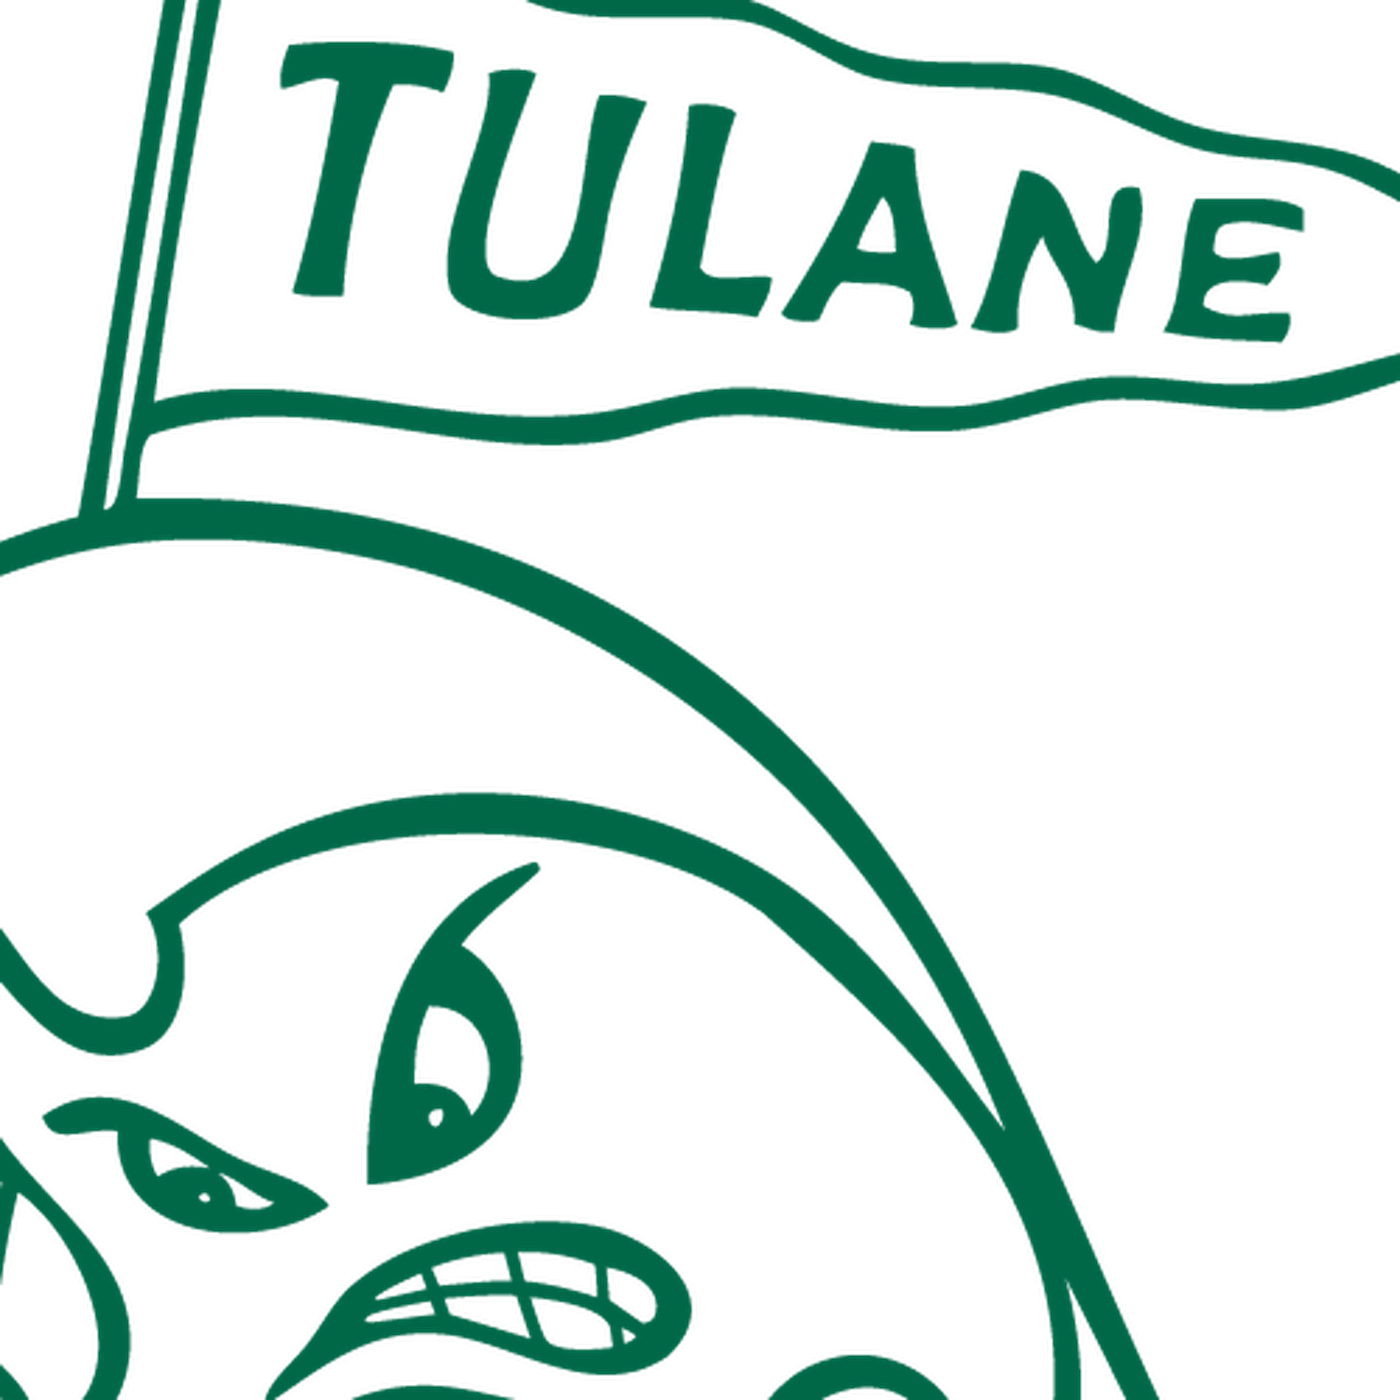 Stat book clipart jpg transparent stock GAMETHREAD: LSU v Tulane - Game 2 - And The Valley Shook jpg transparent stock